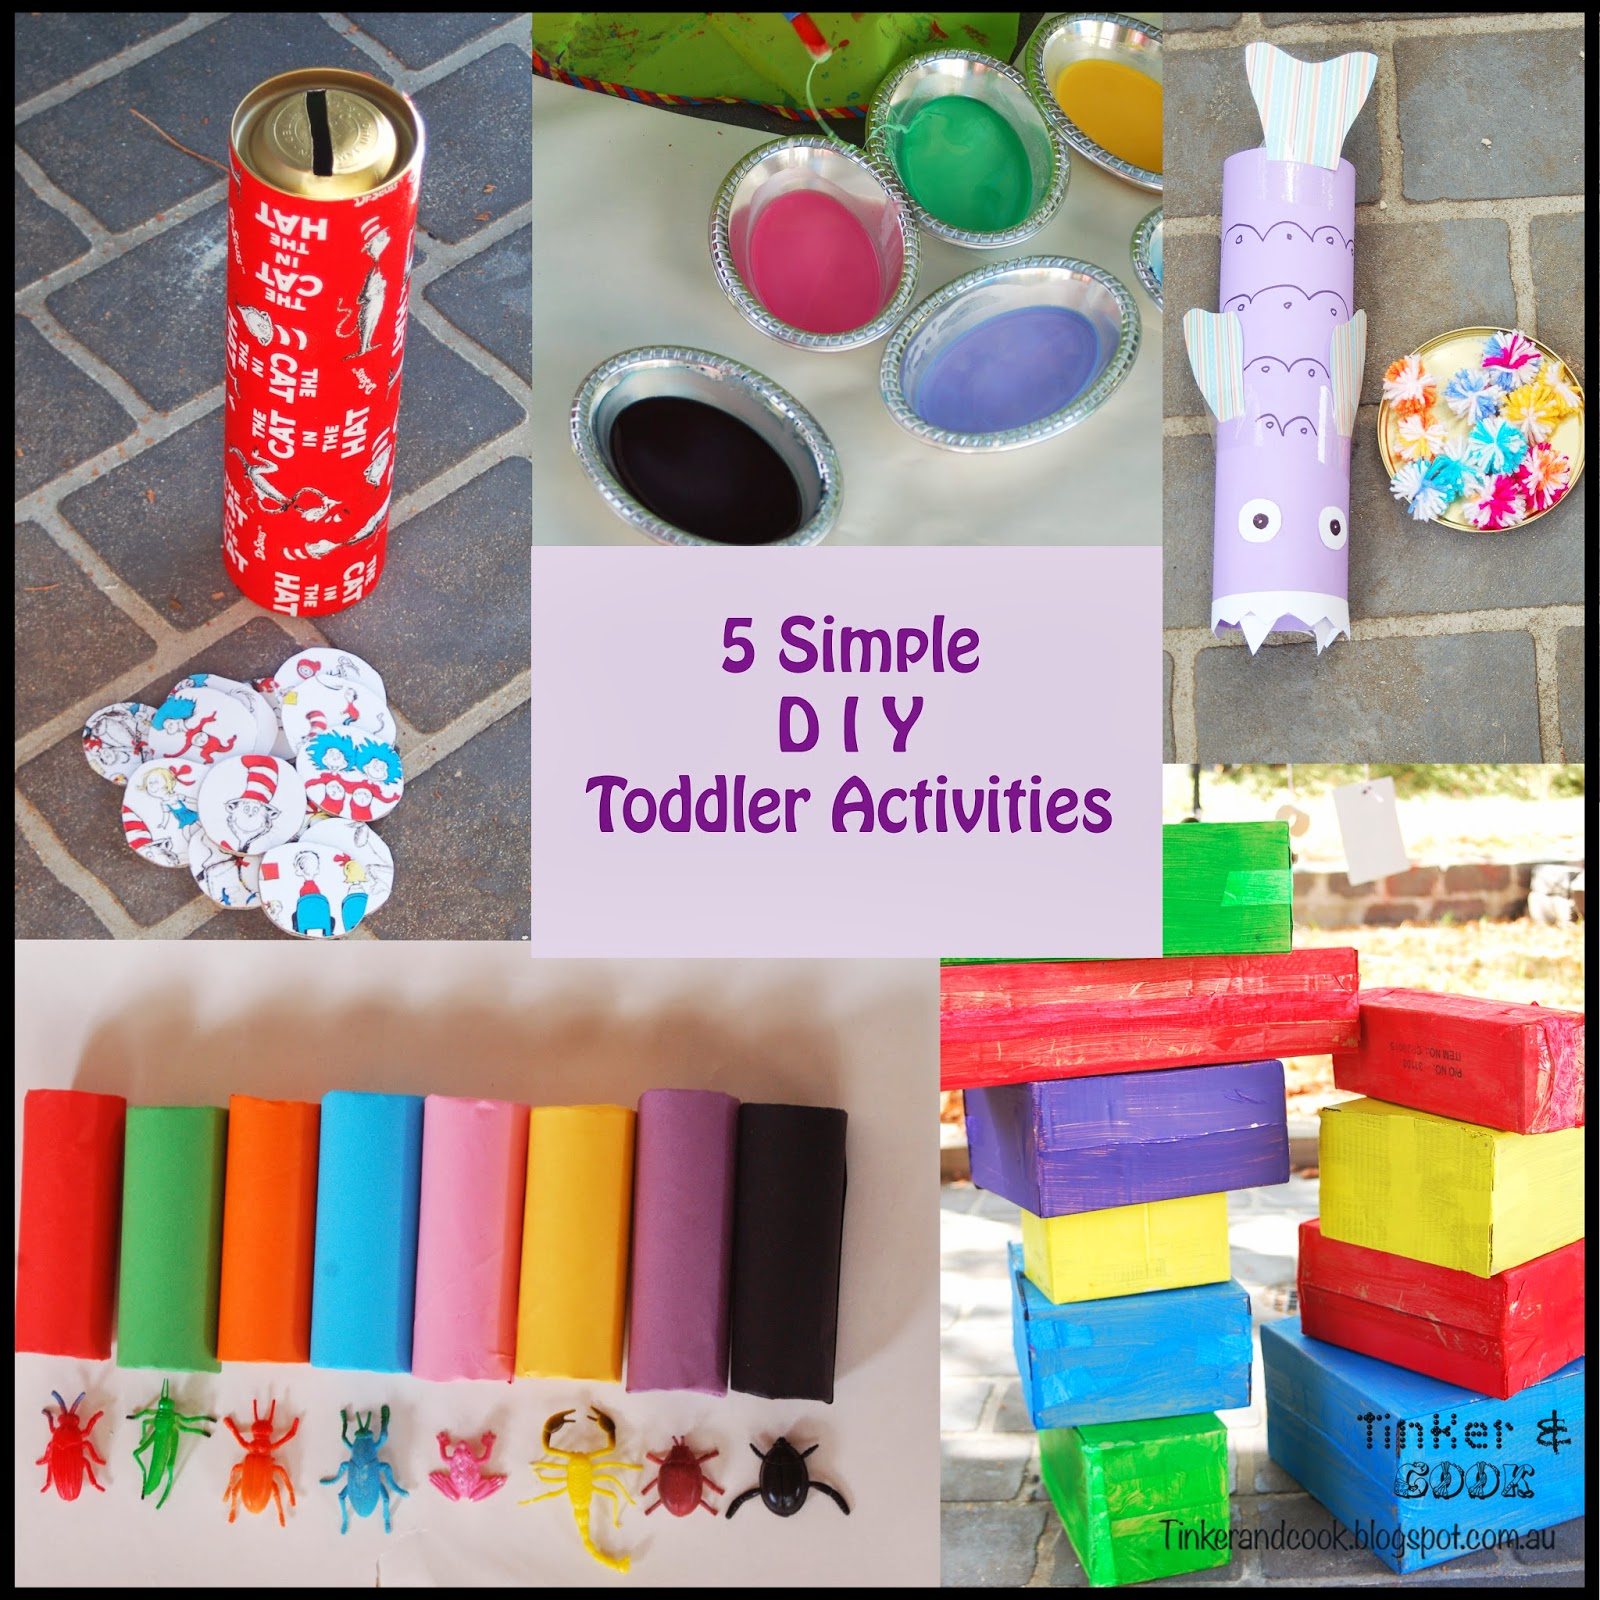 Tinker and Cook: 5 Simple DIY Activities for Toddlers